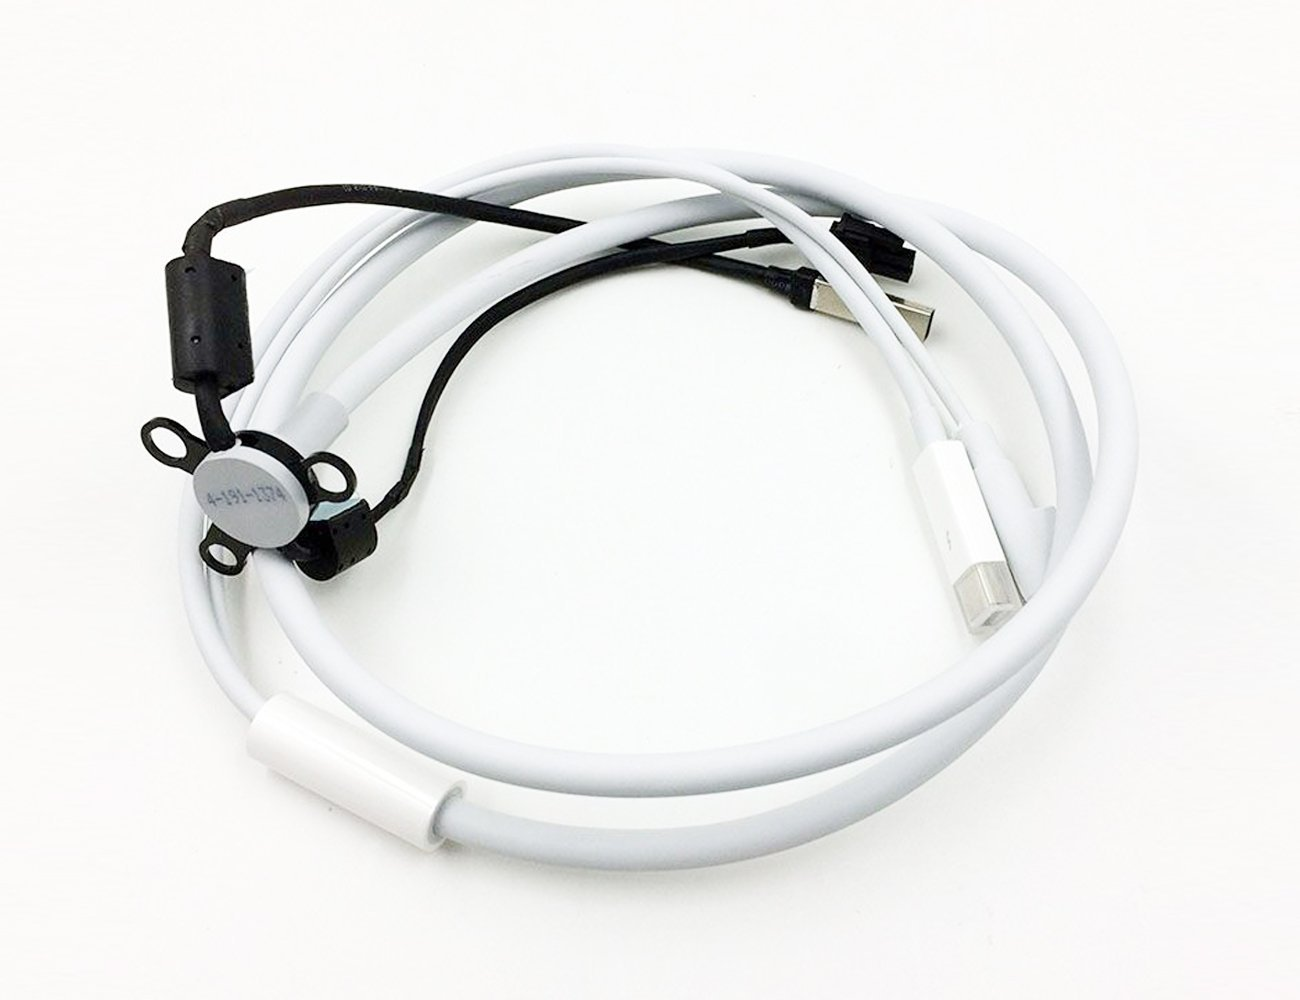 Willhom 922-9941 All-in-One Cable Replacement for Thunderbolt Display 27